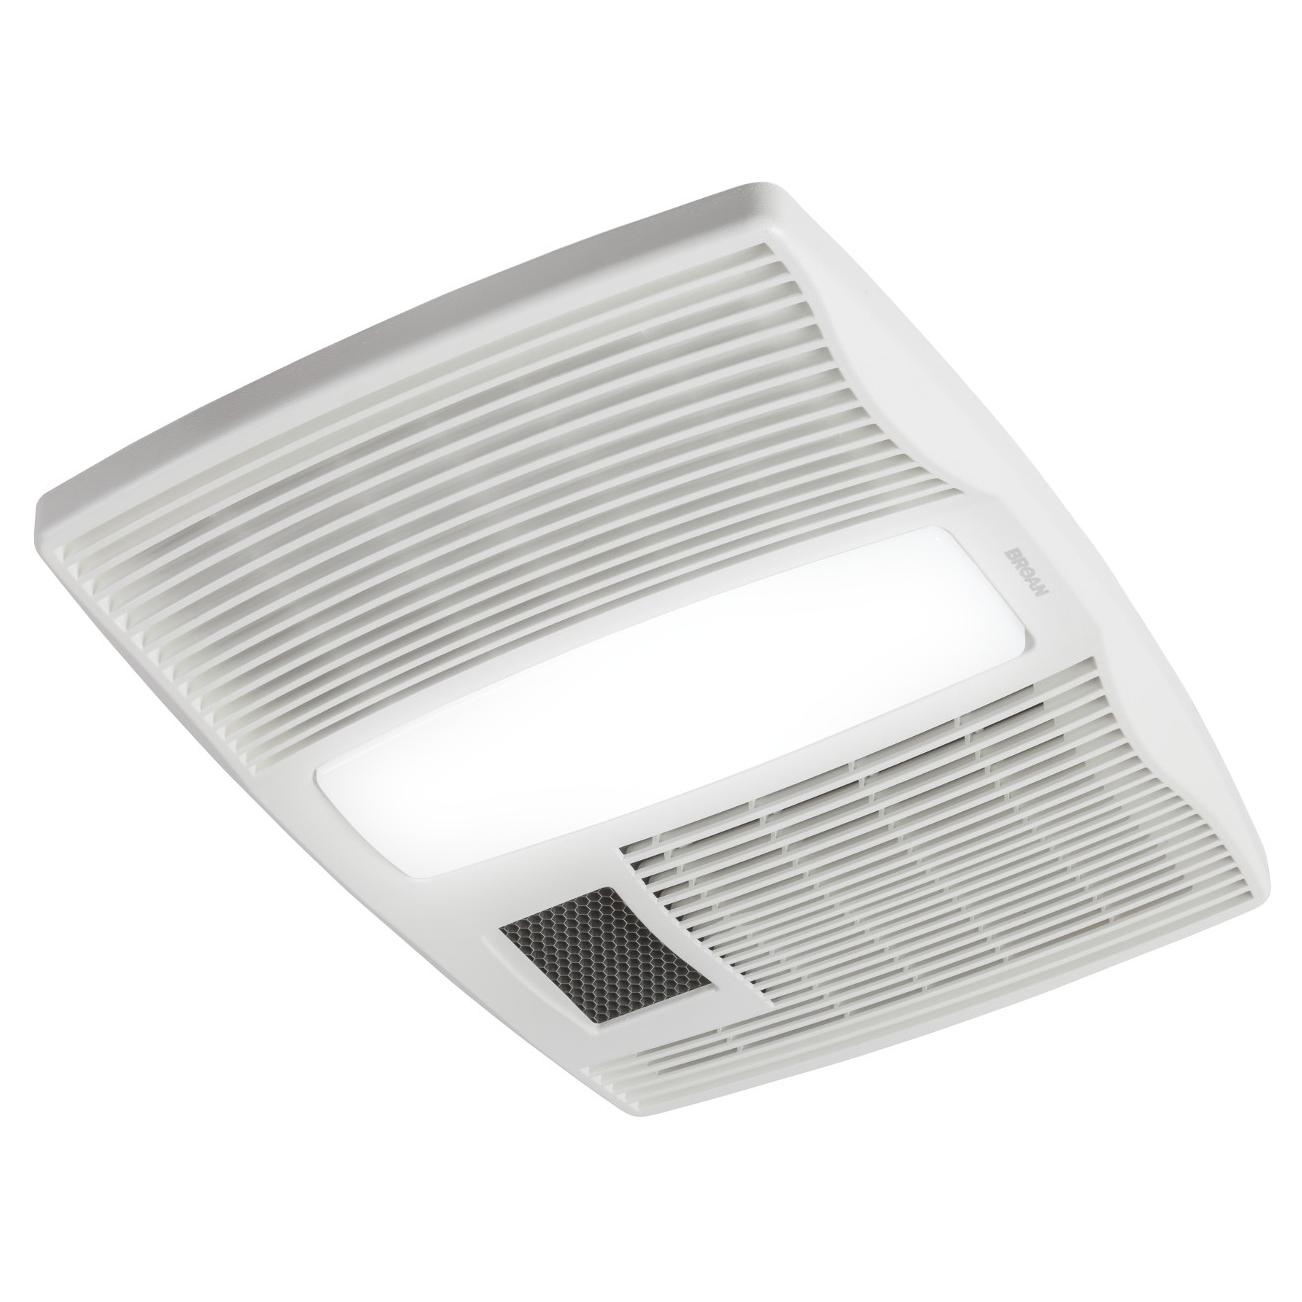 Broan-Nutone QTX110HL Very Quiet Ceiling Heater, Fan, And